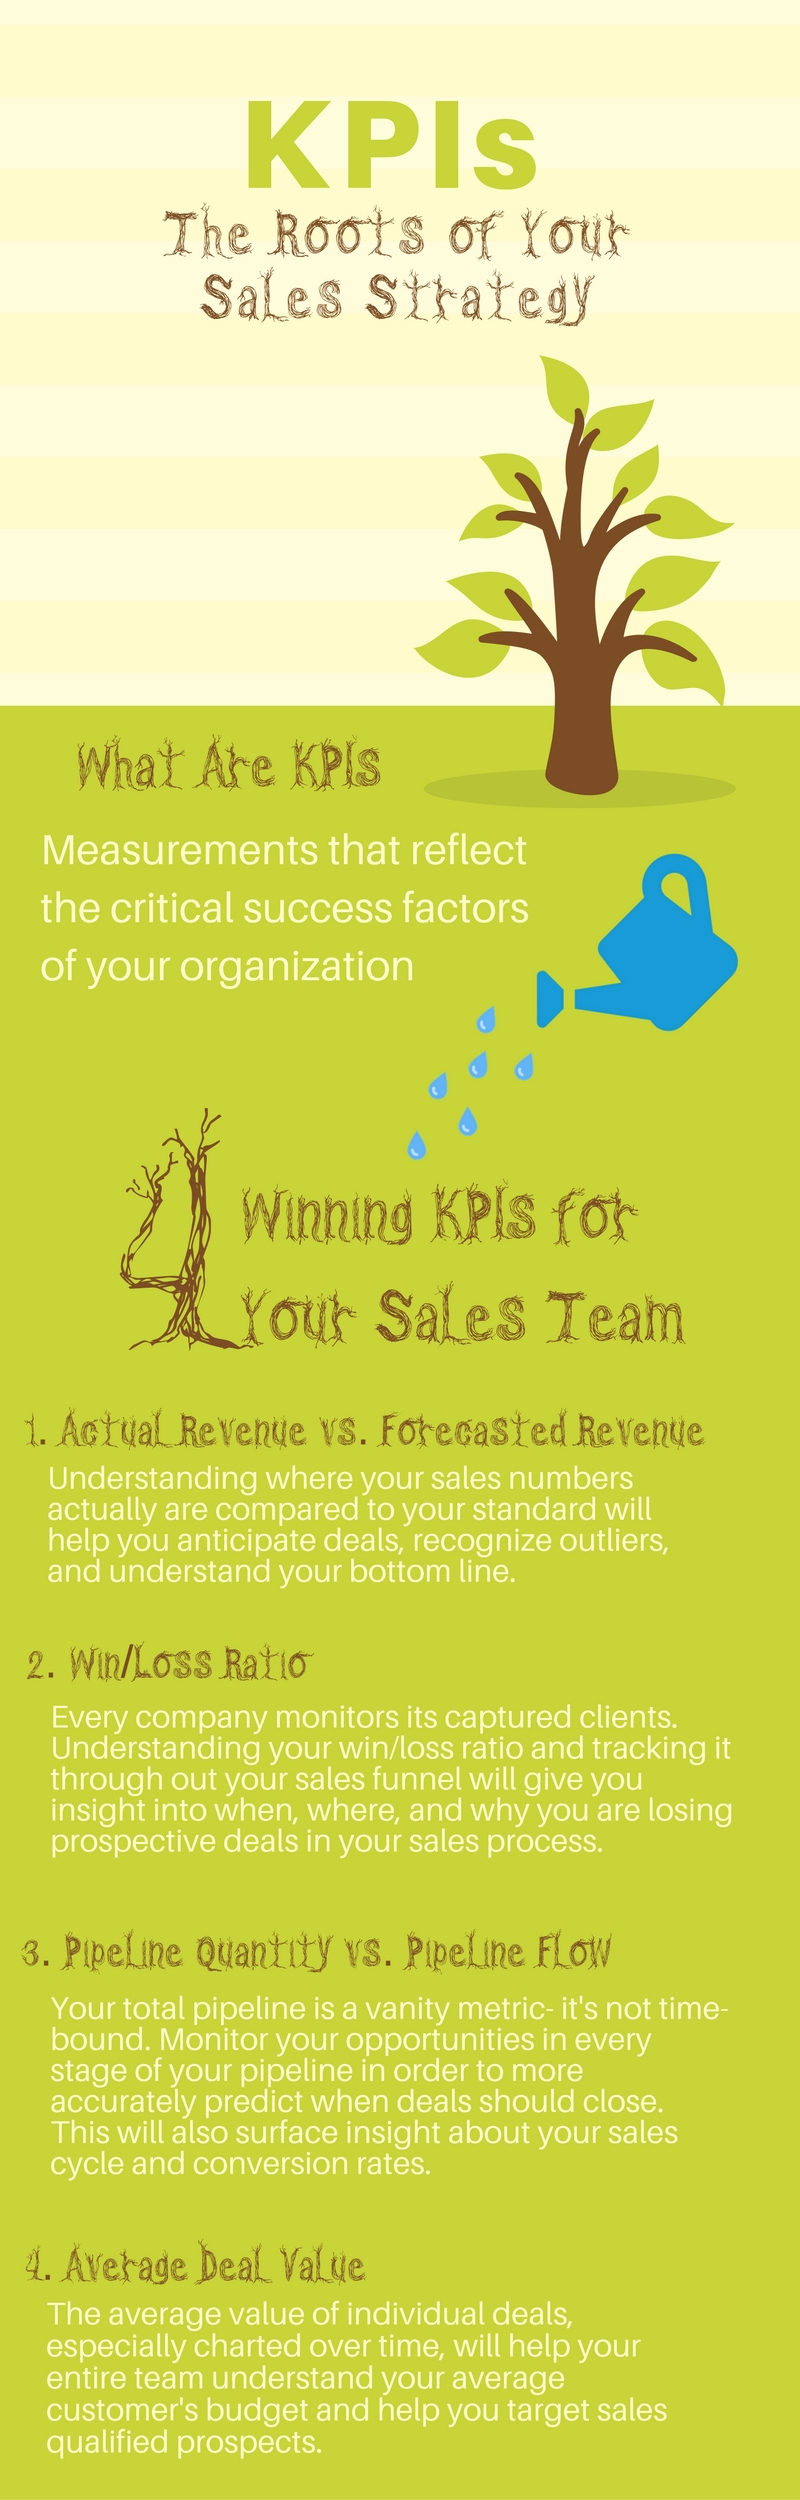 KPIs measuring your growth